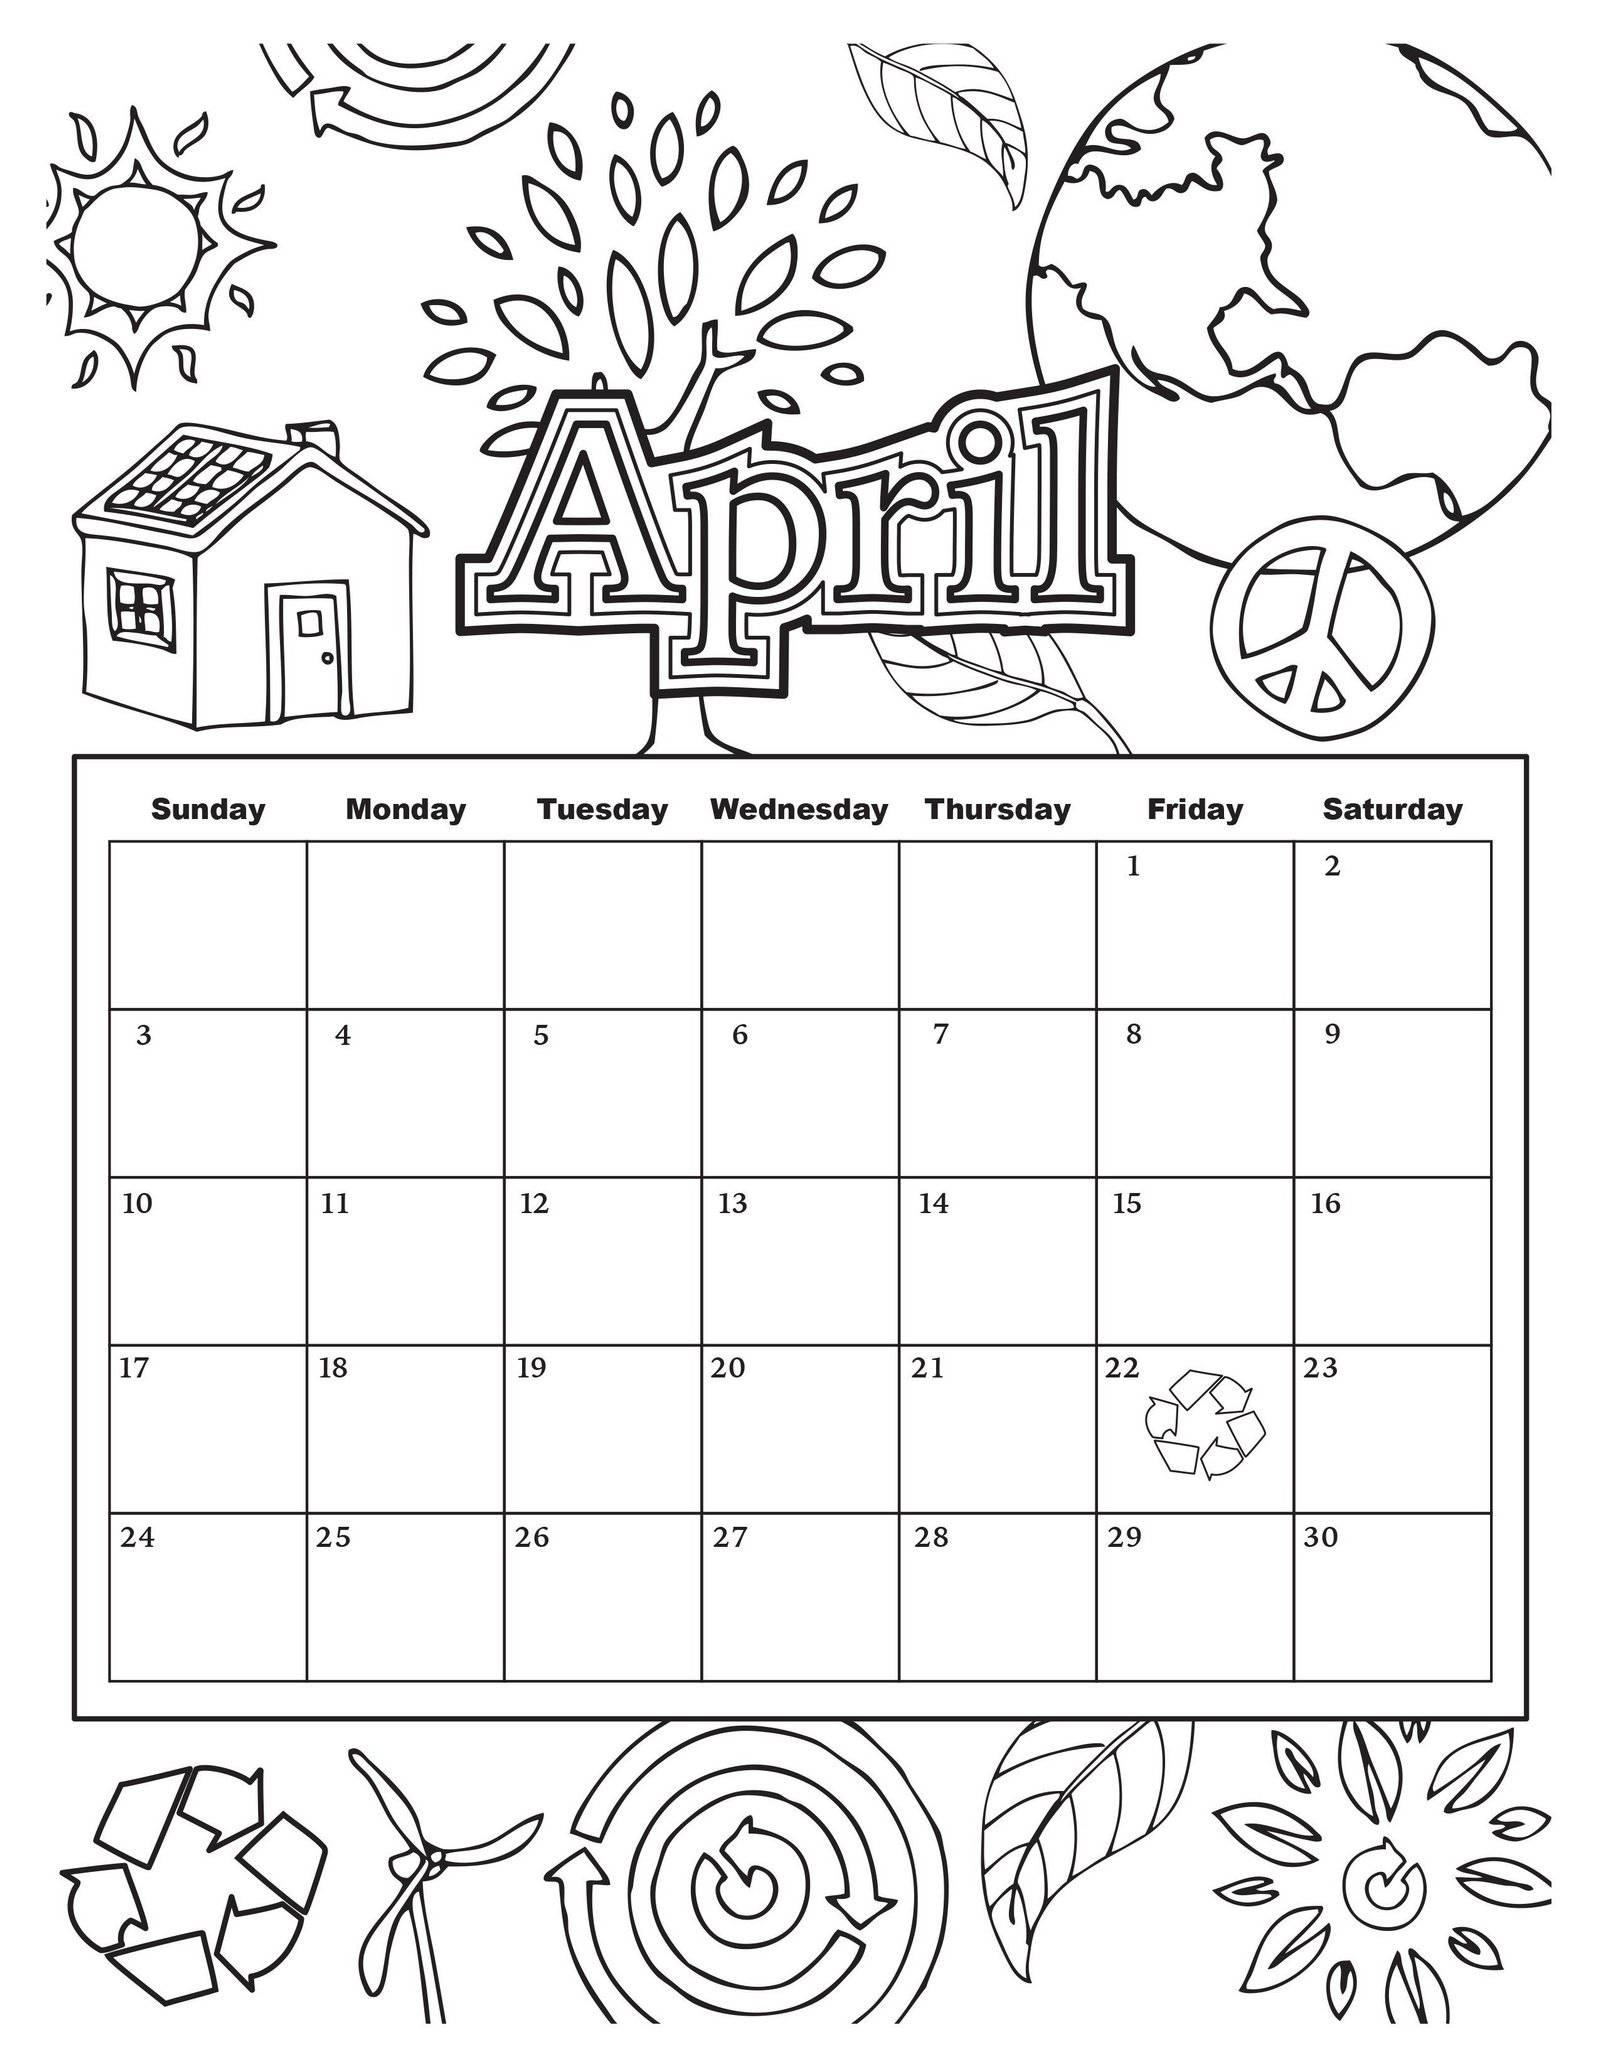 April environmental awareness month coloring page